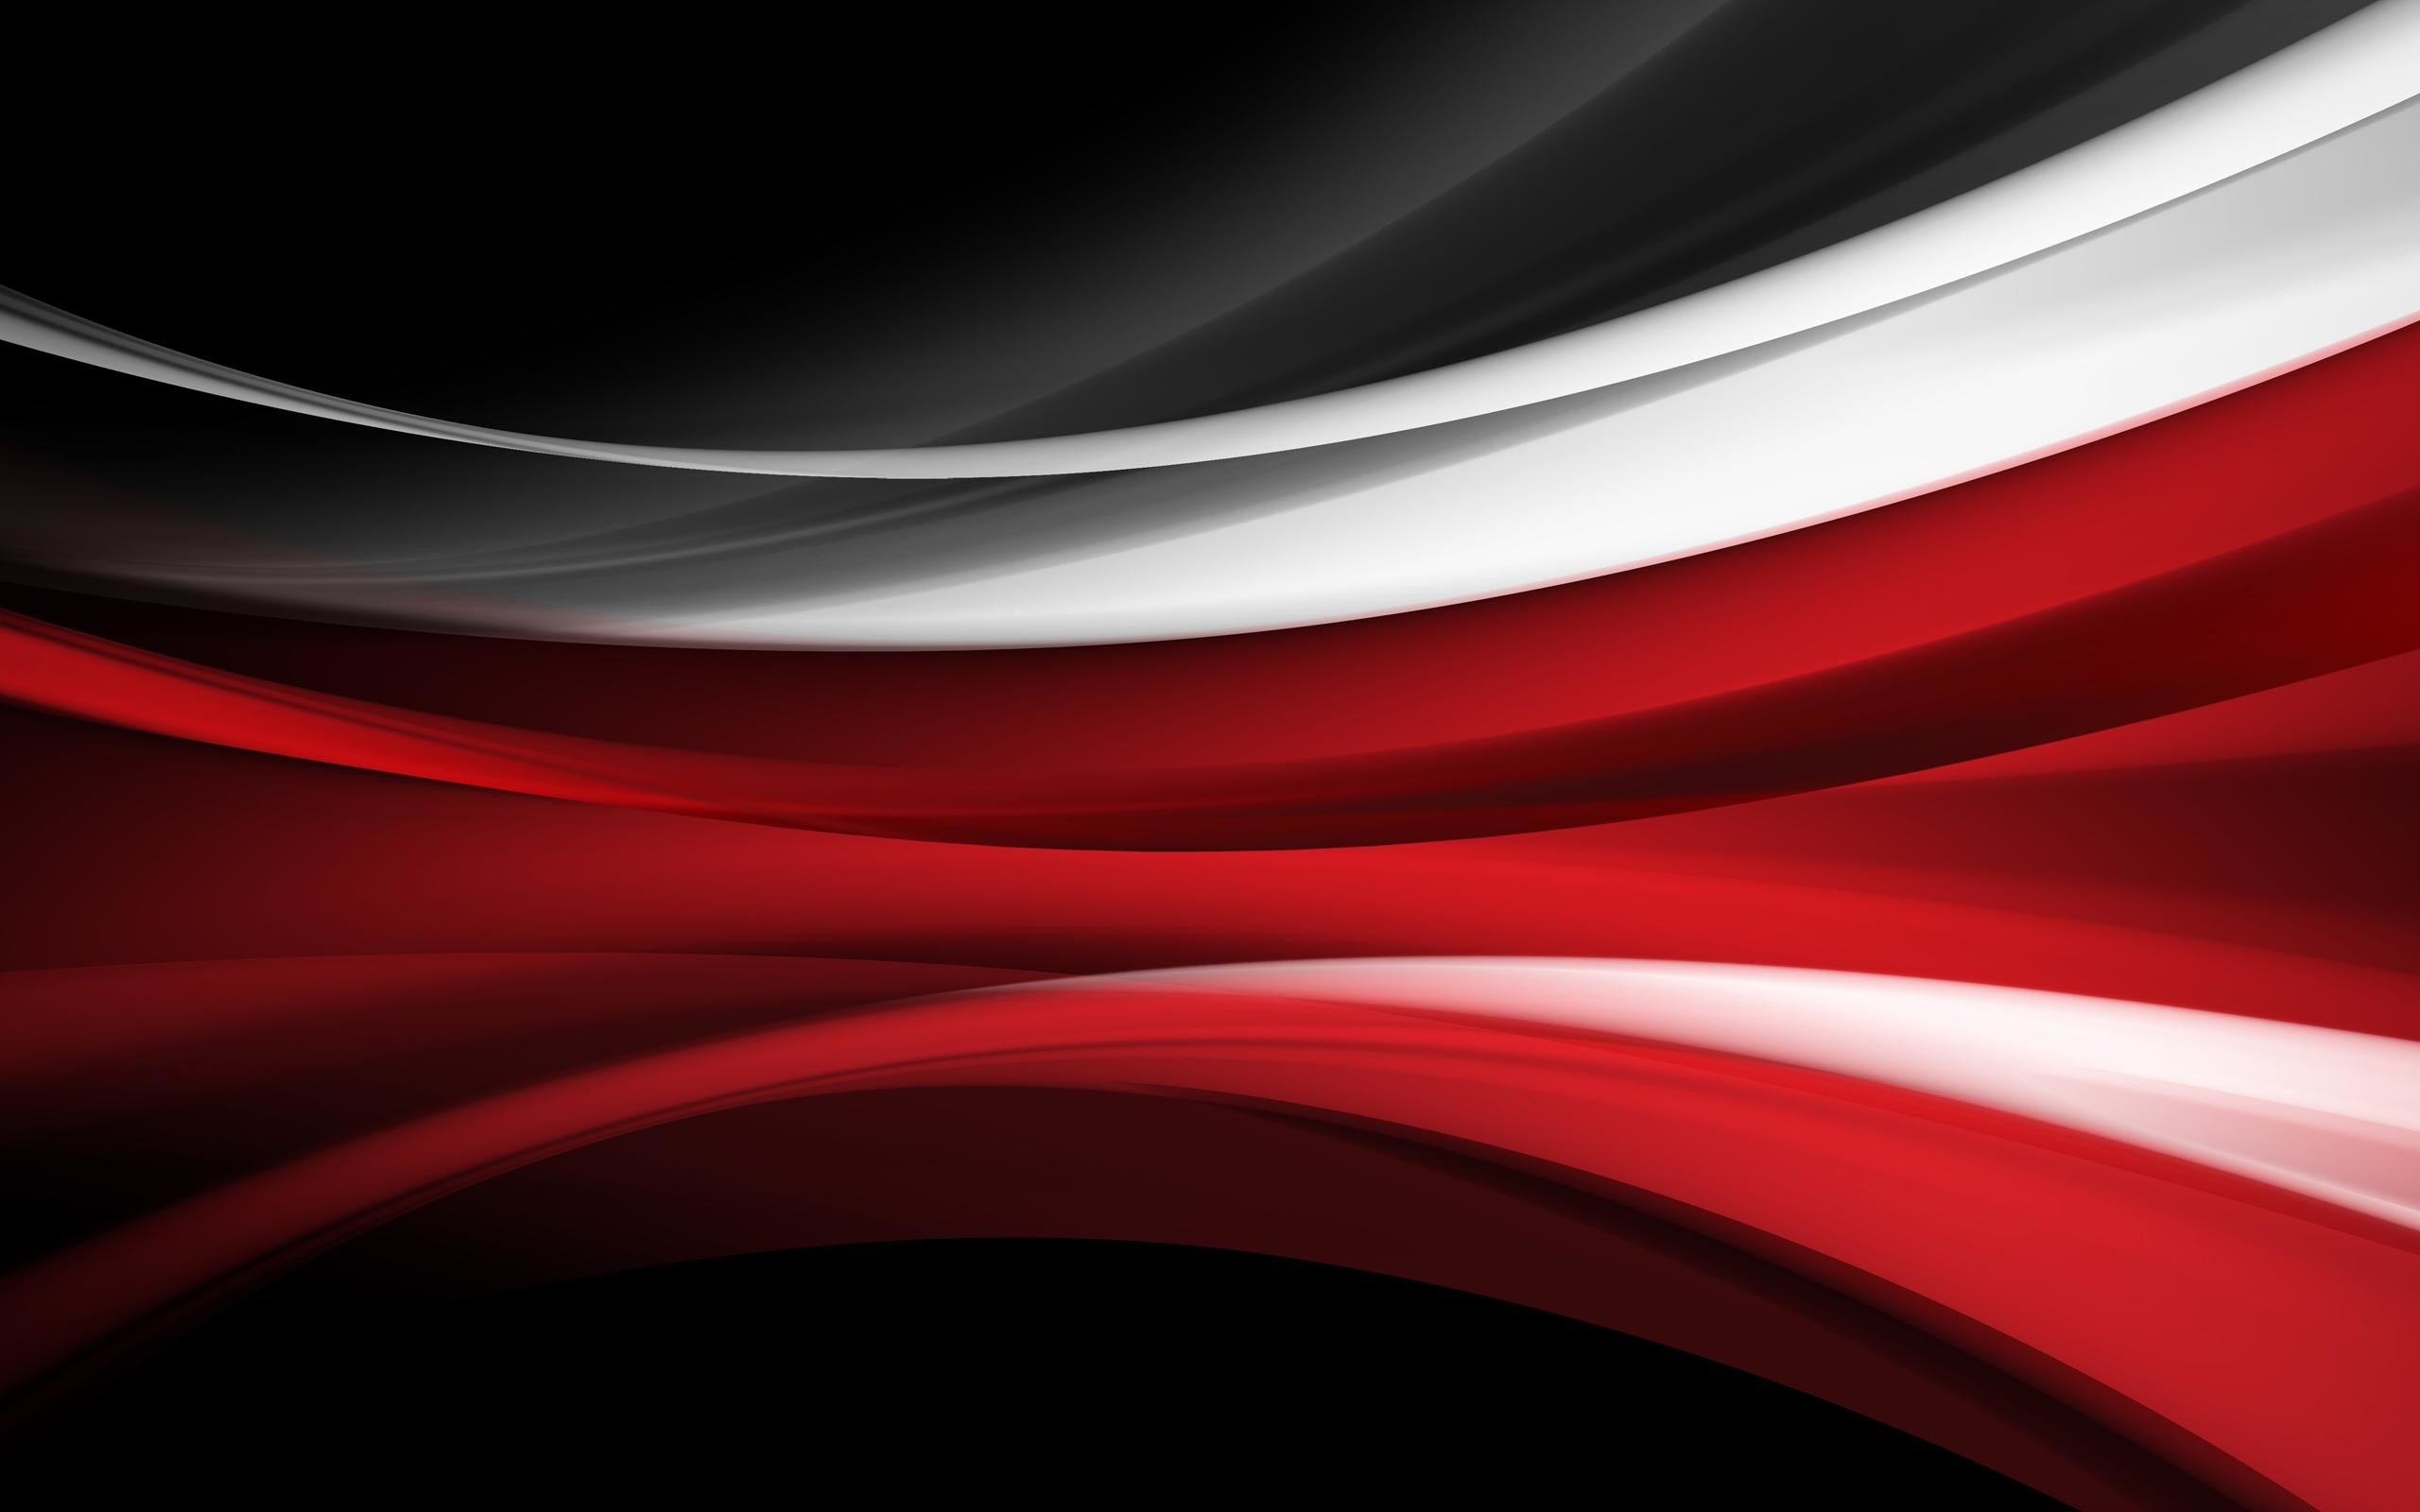 Free-HD-Black-And-Red-Wallpapers-For-Desktop